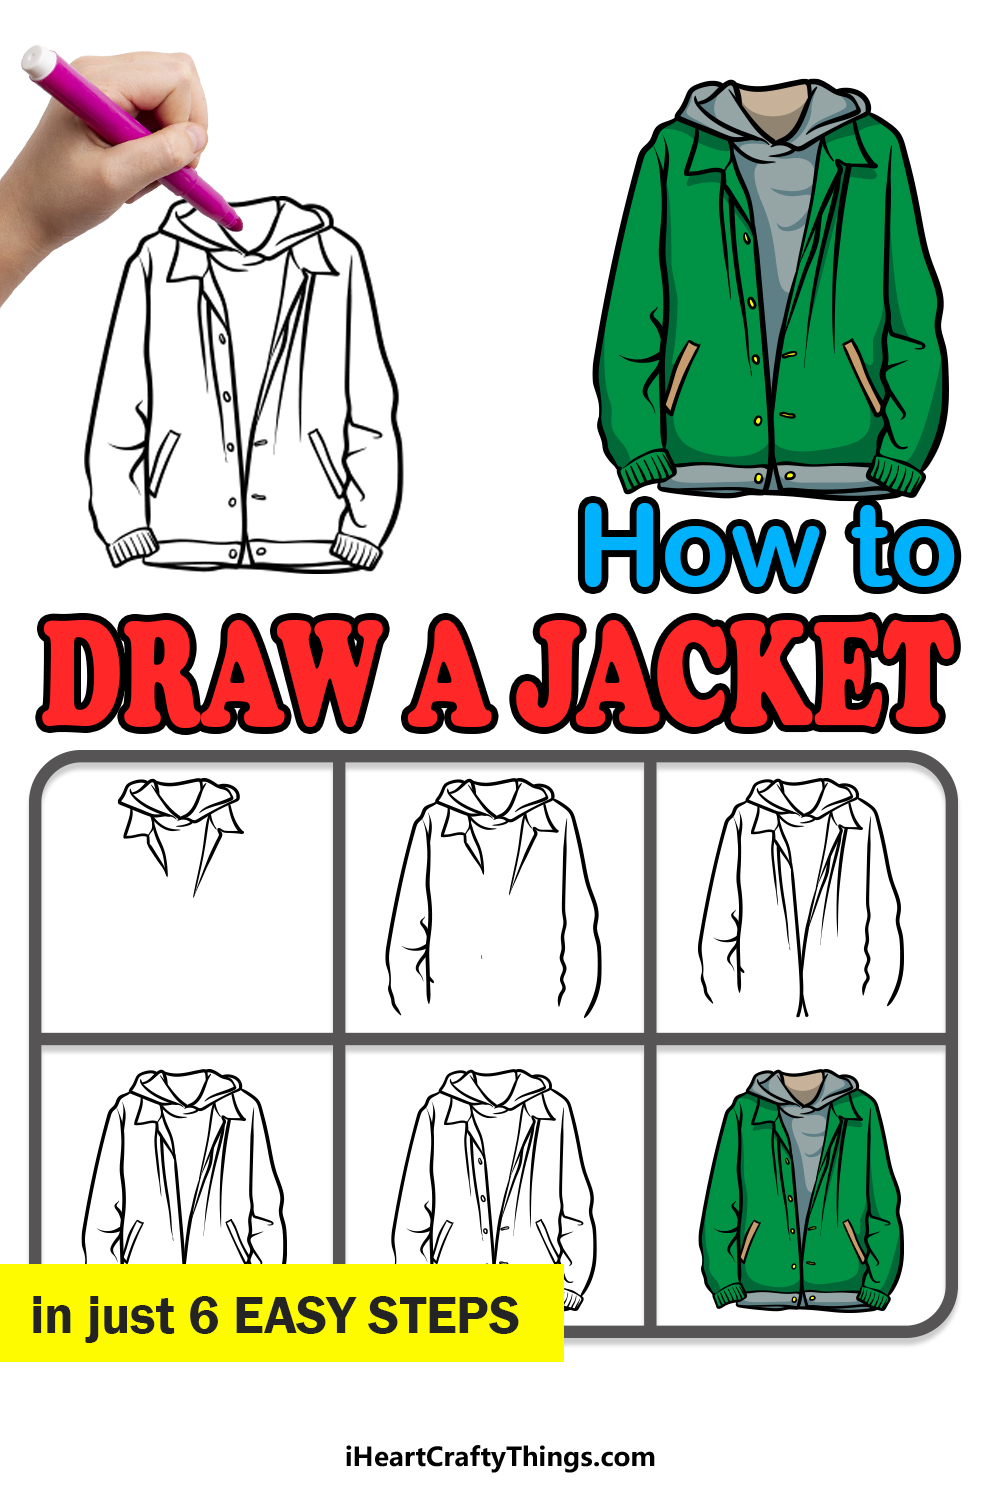 how to draw a jacket in 6 easy steps